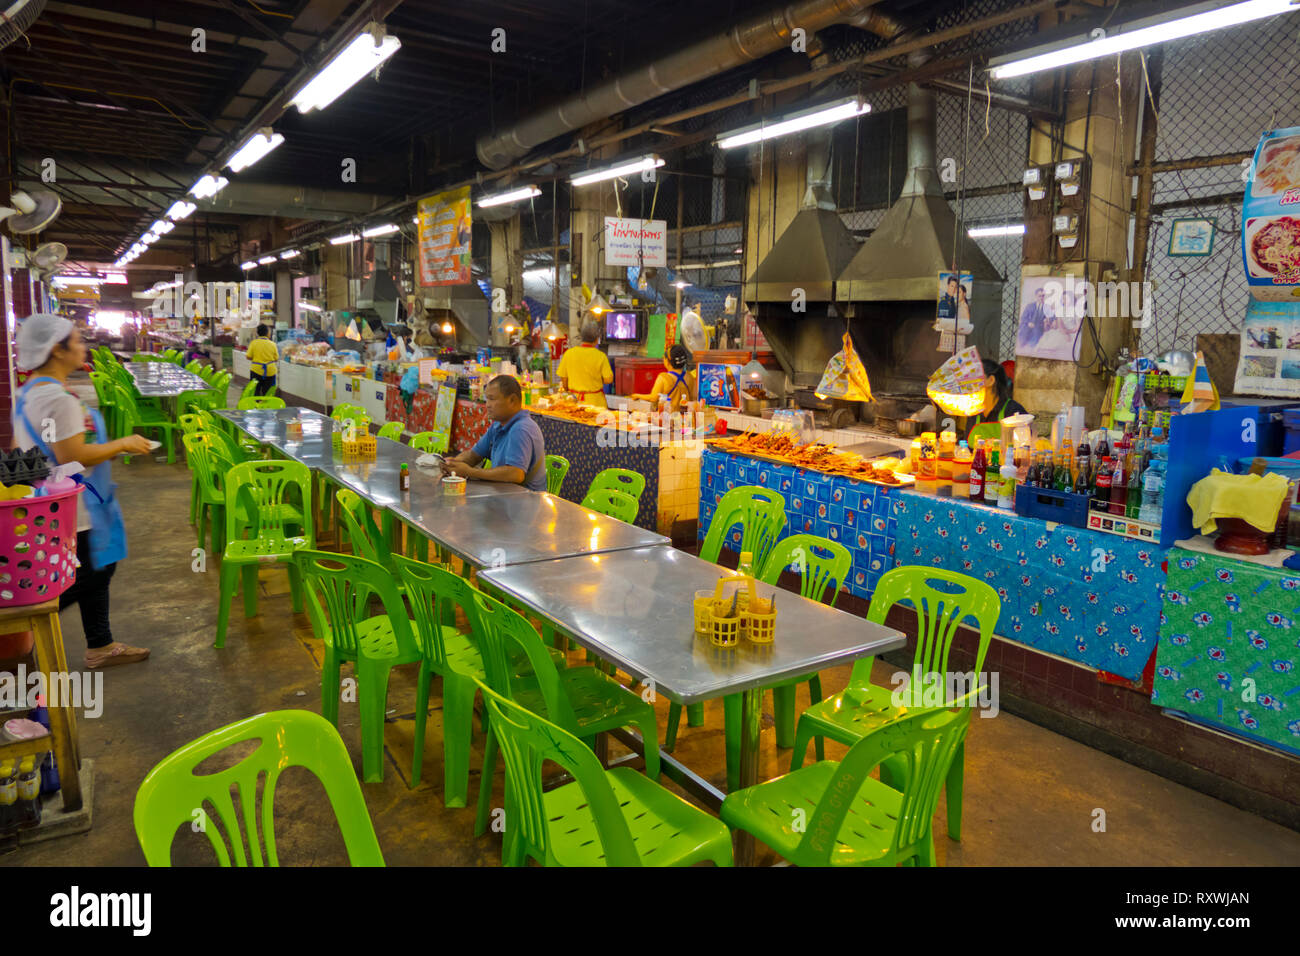 Food stalls and eating area, indoor market, Trat, Thailand - Stock Image